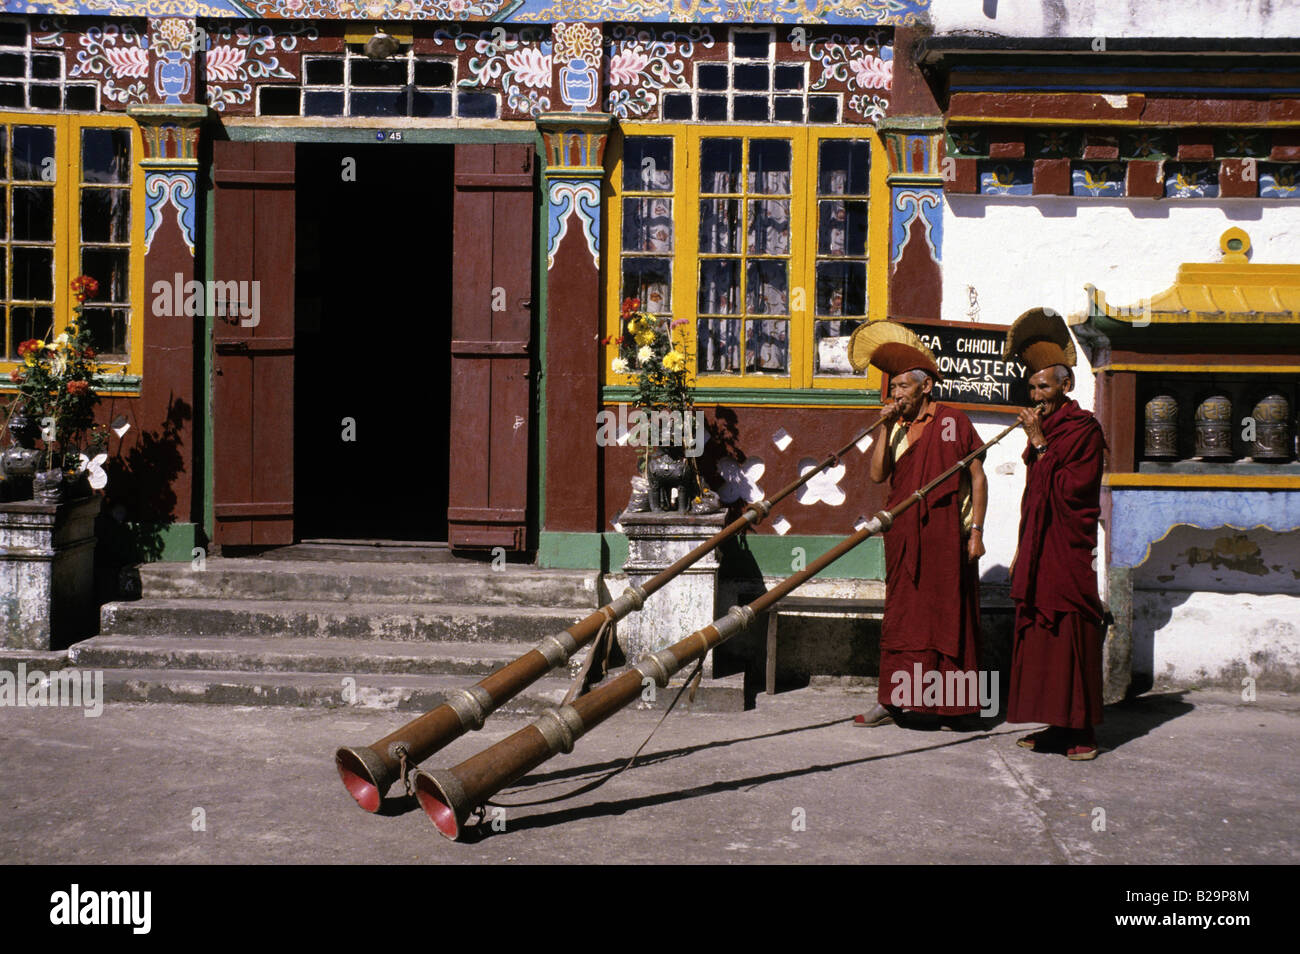 Darjeeling North India Ref WP SWIN 000644 007 Date 07 08 2007 COMPULSORY CREDIT World Pictures Photoshot - Stock Image